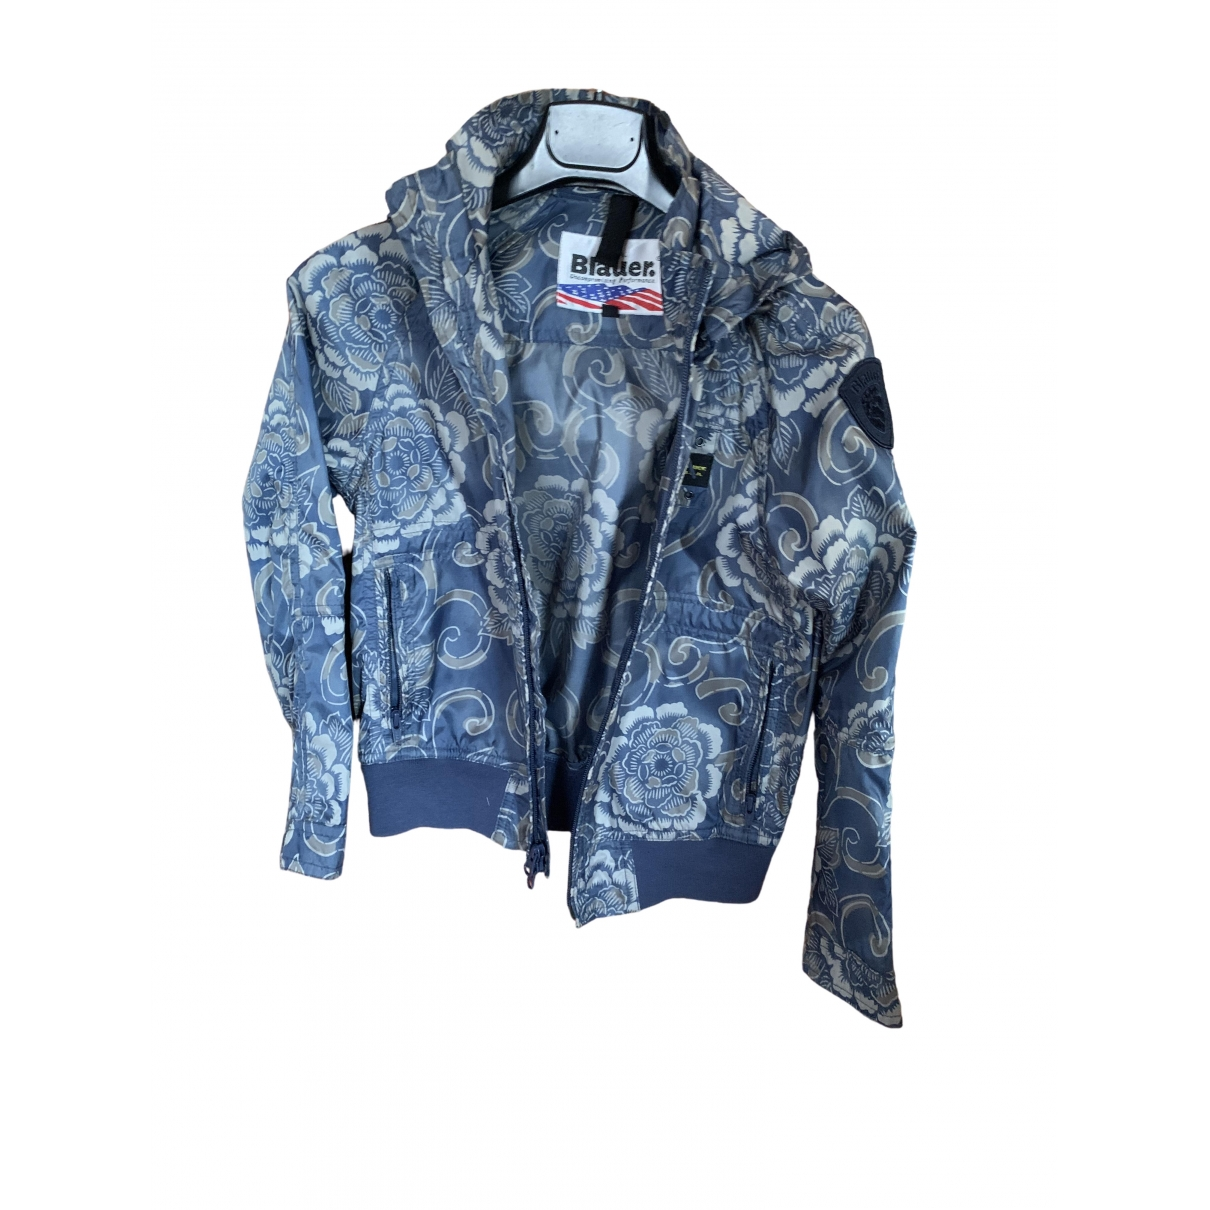 Blauer \N Blue jacket & coat for Kids 8 years - until 50 inches UK